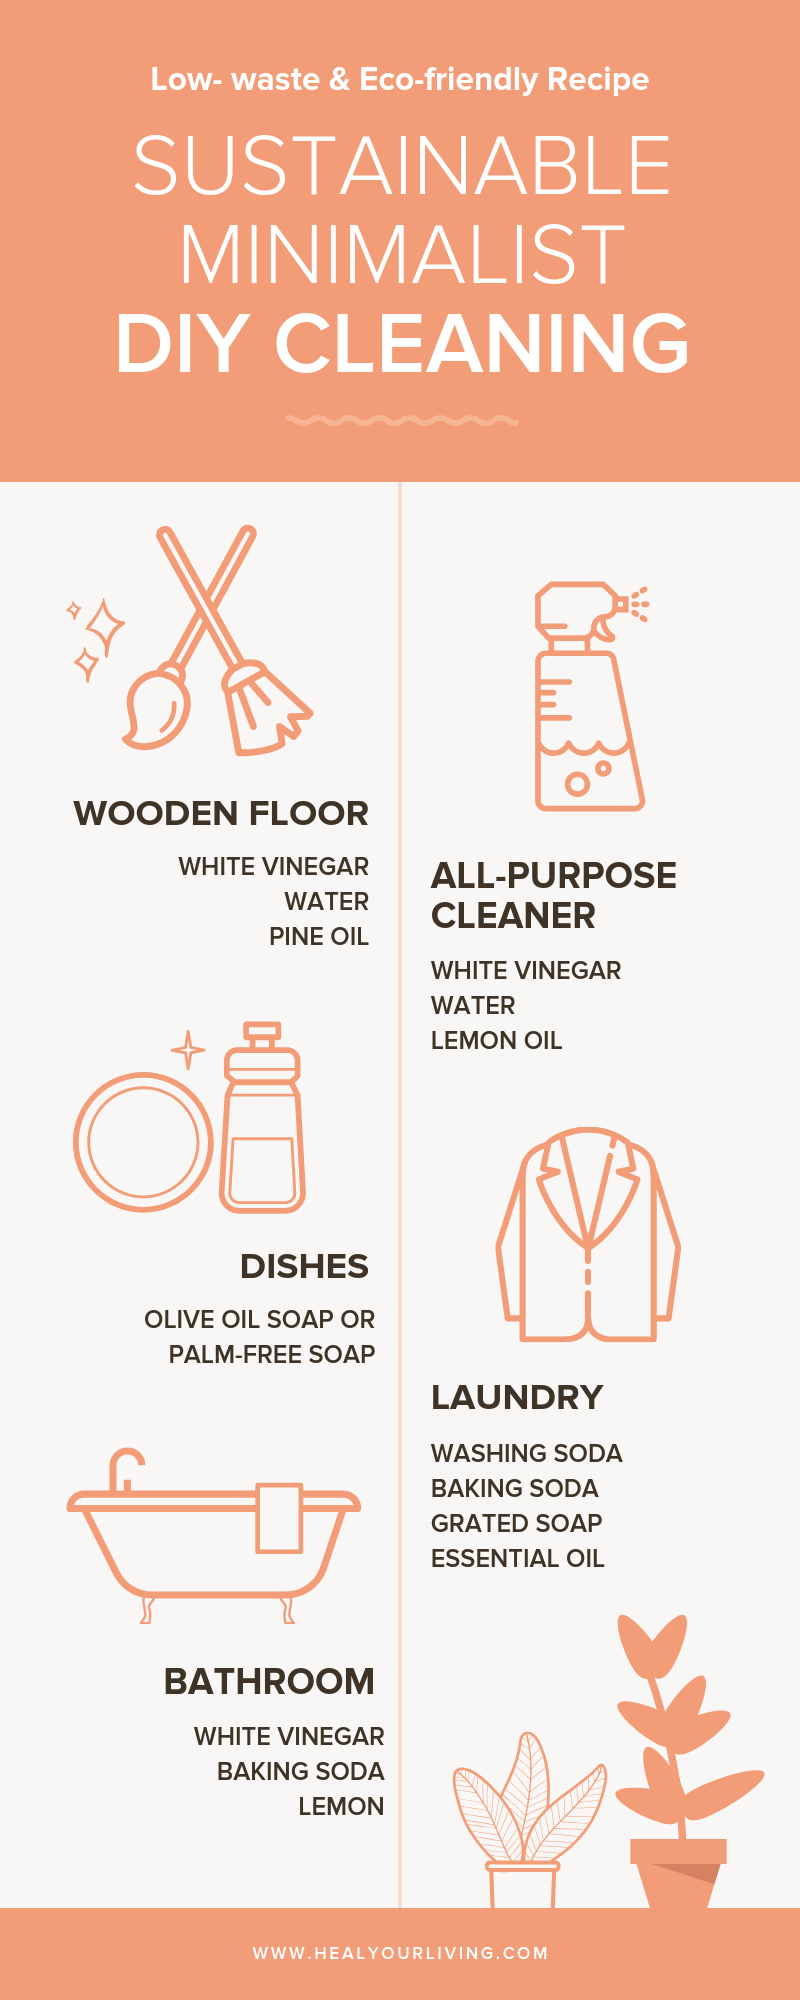 Get tips on how to declutter, organize, and clean in an eco-friendly and sustainable way. Receive insights on Minimalist apartment cleaning routine and Minimalist lifestyle.